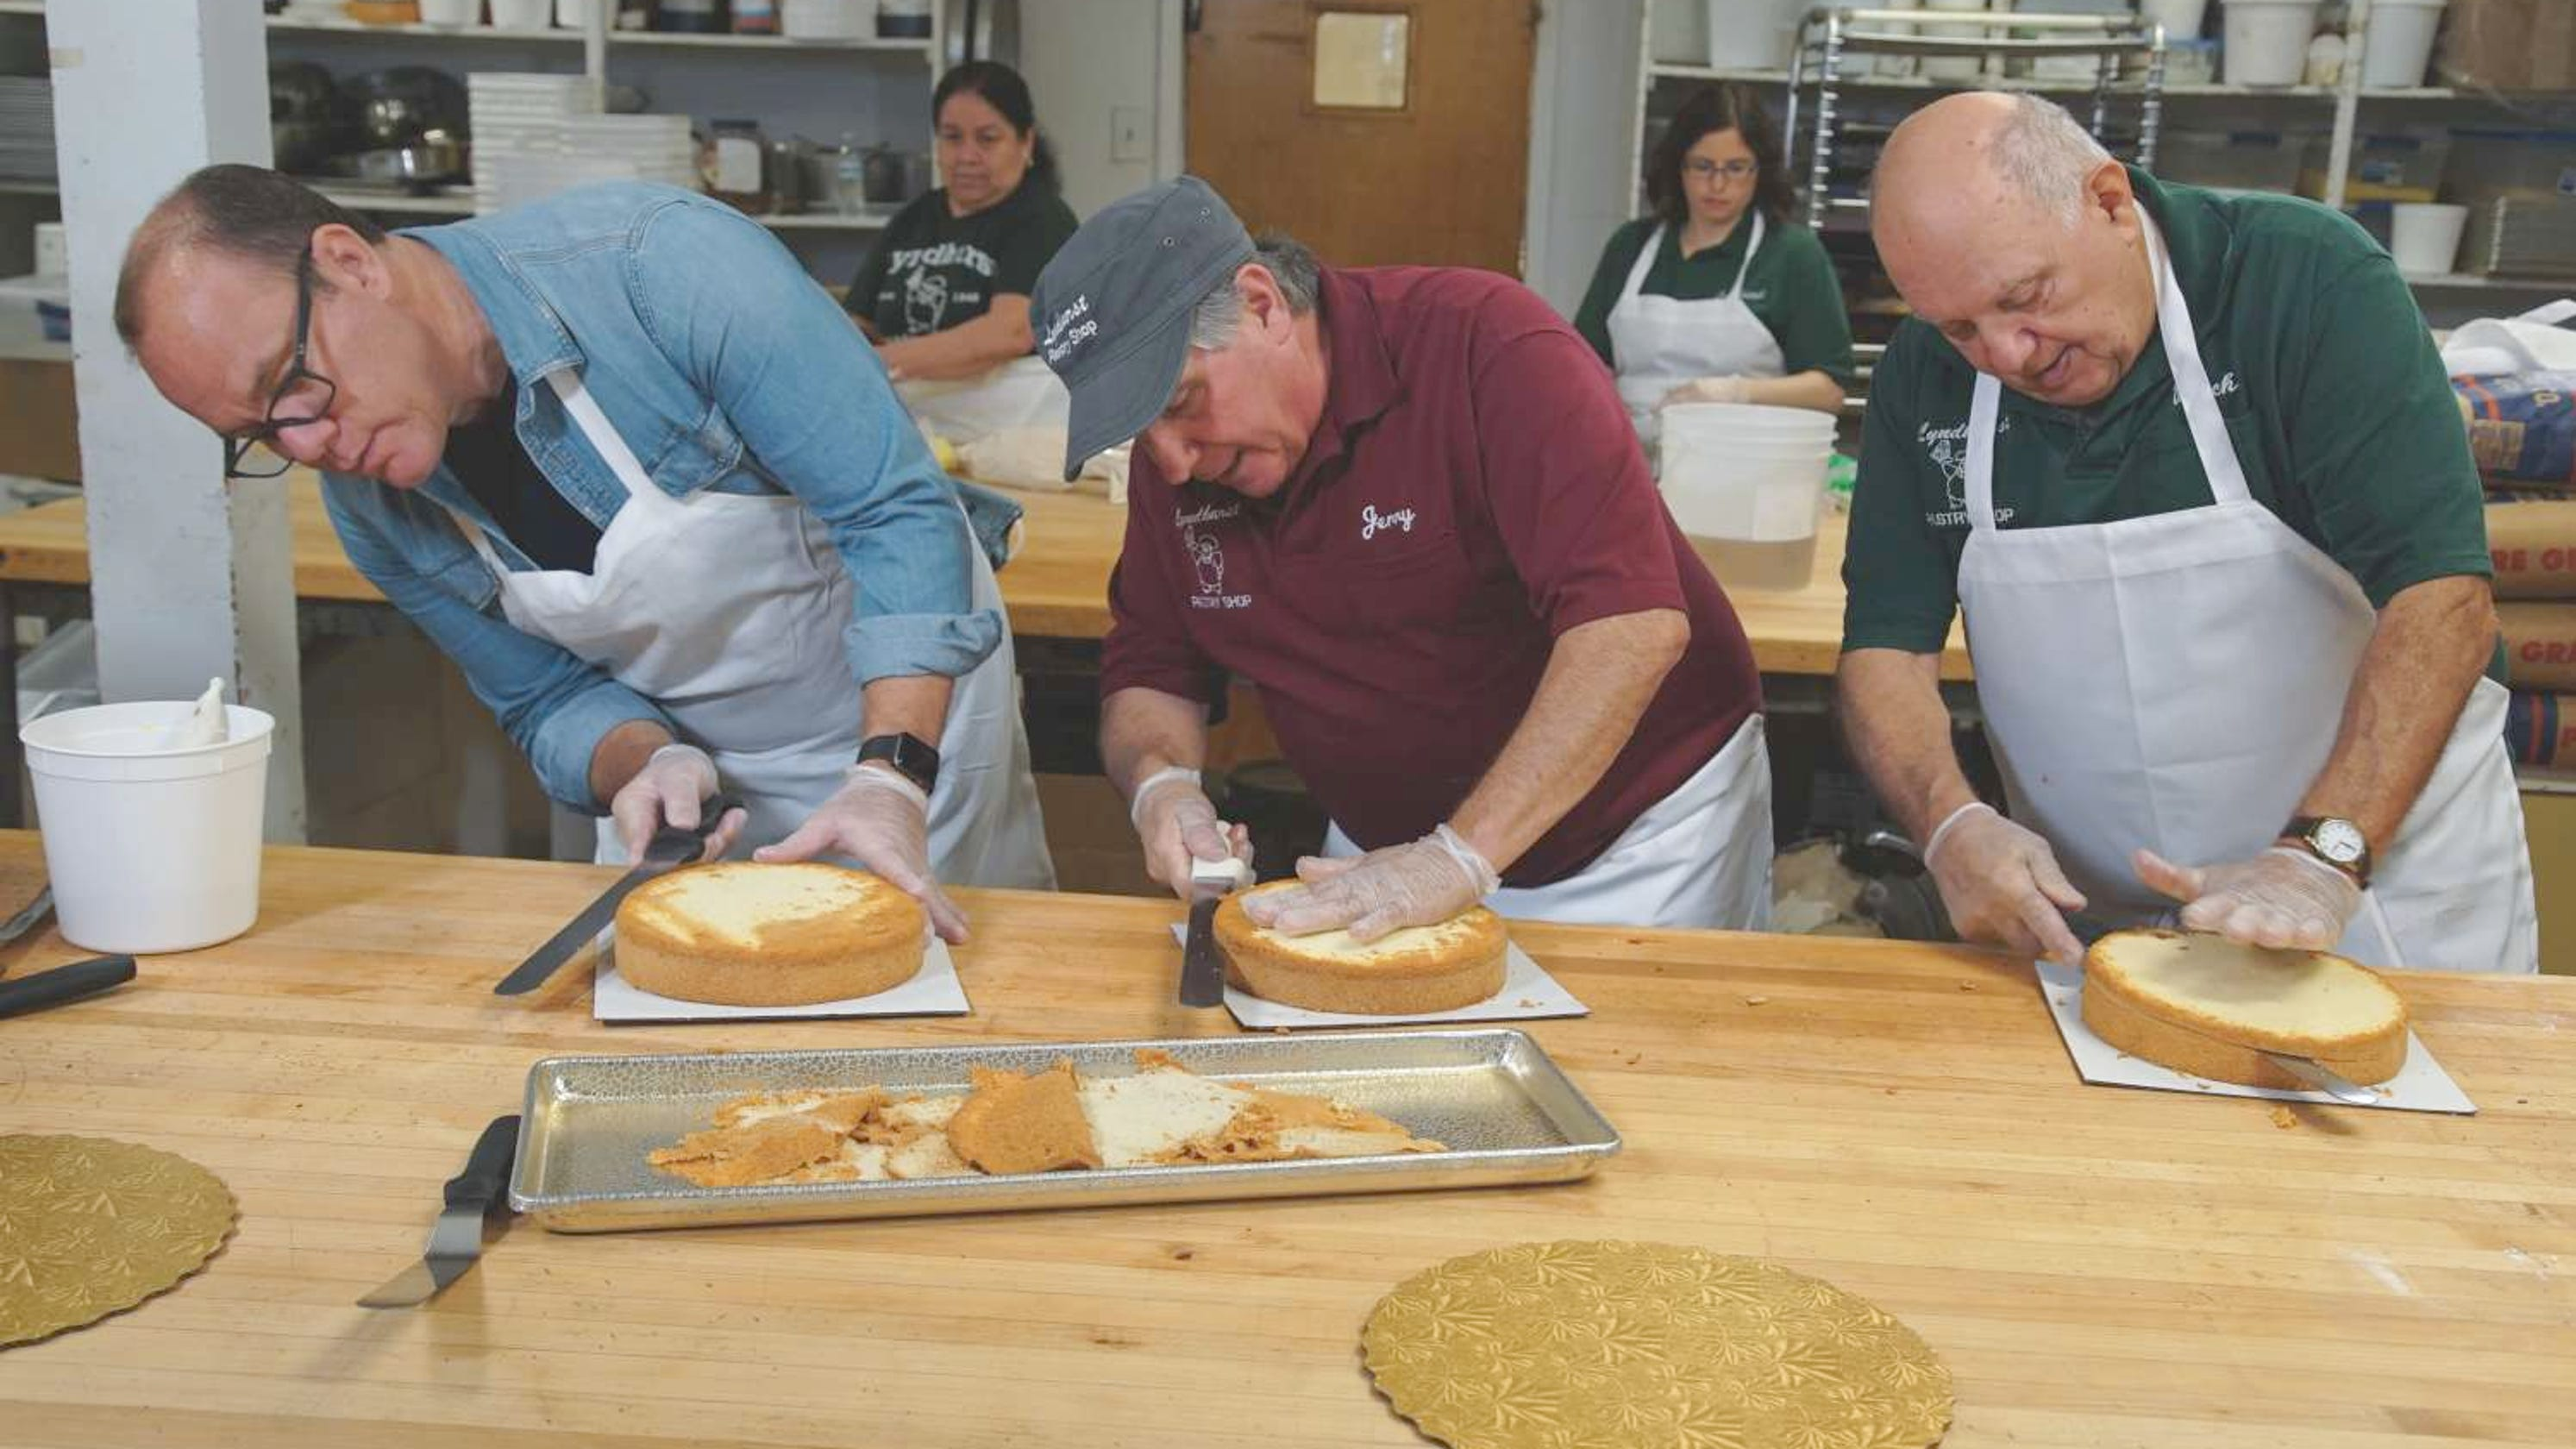 Lyndhurst Pastry Shop, Taskin Bakery to be featured on Food Network